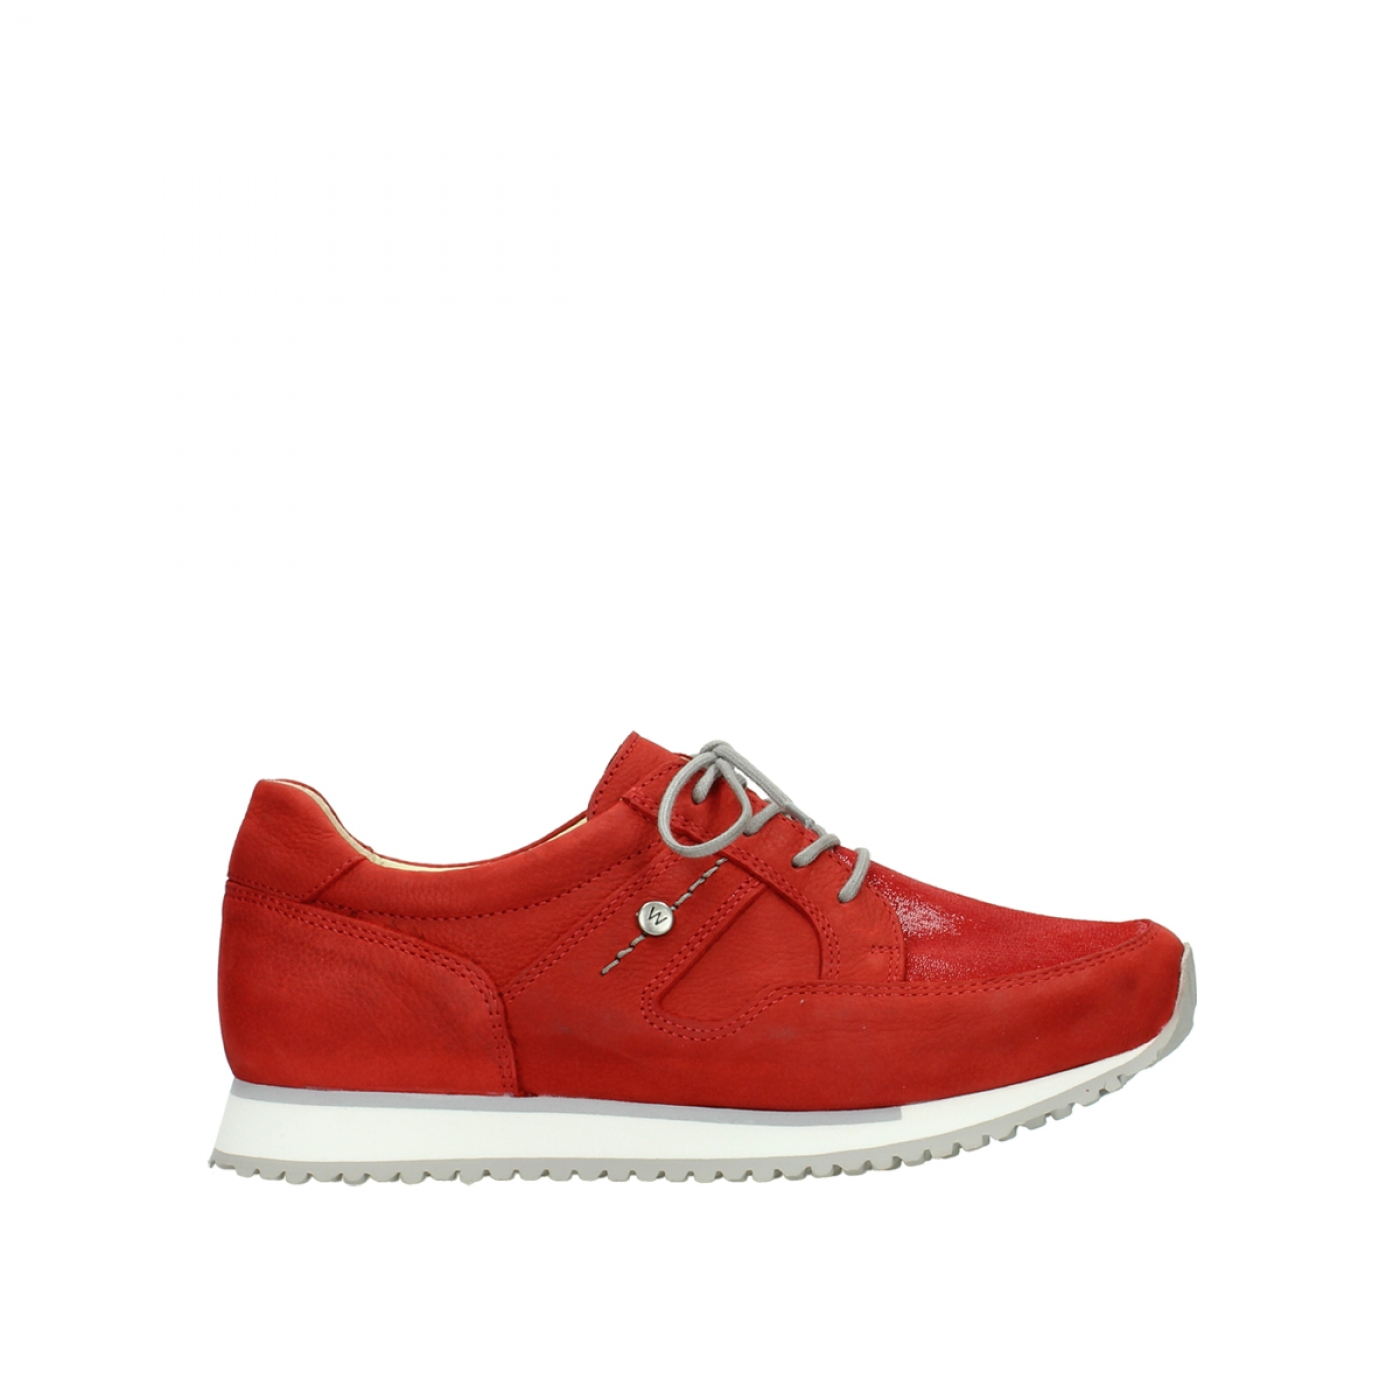 Comfortable Shoes For Women Half Sizes